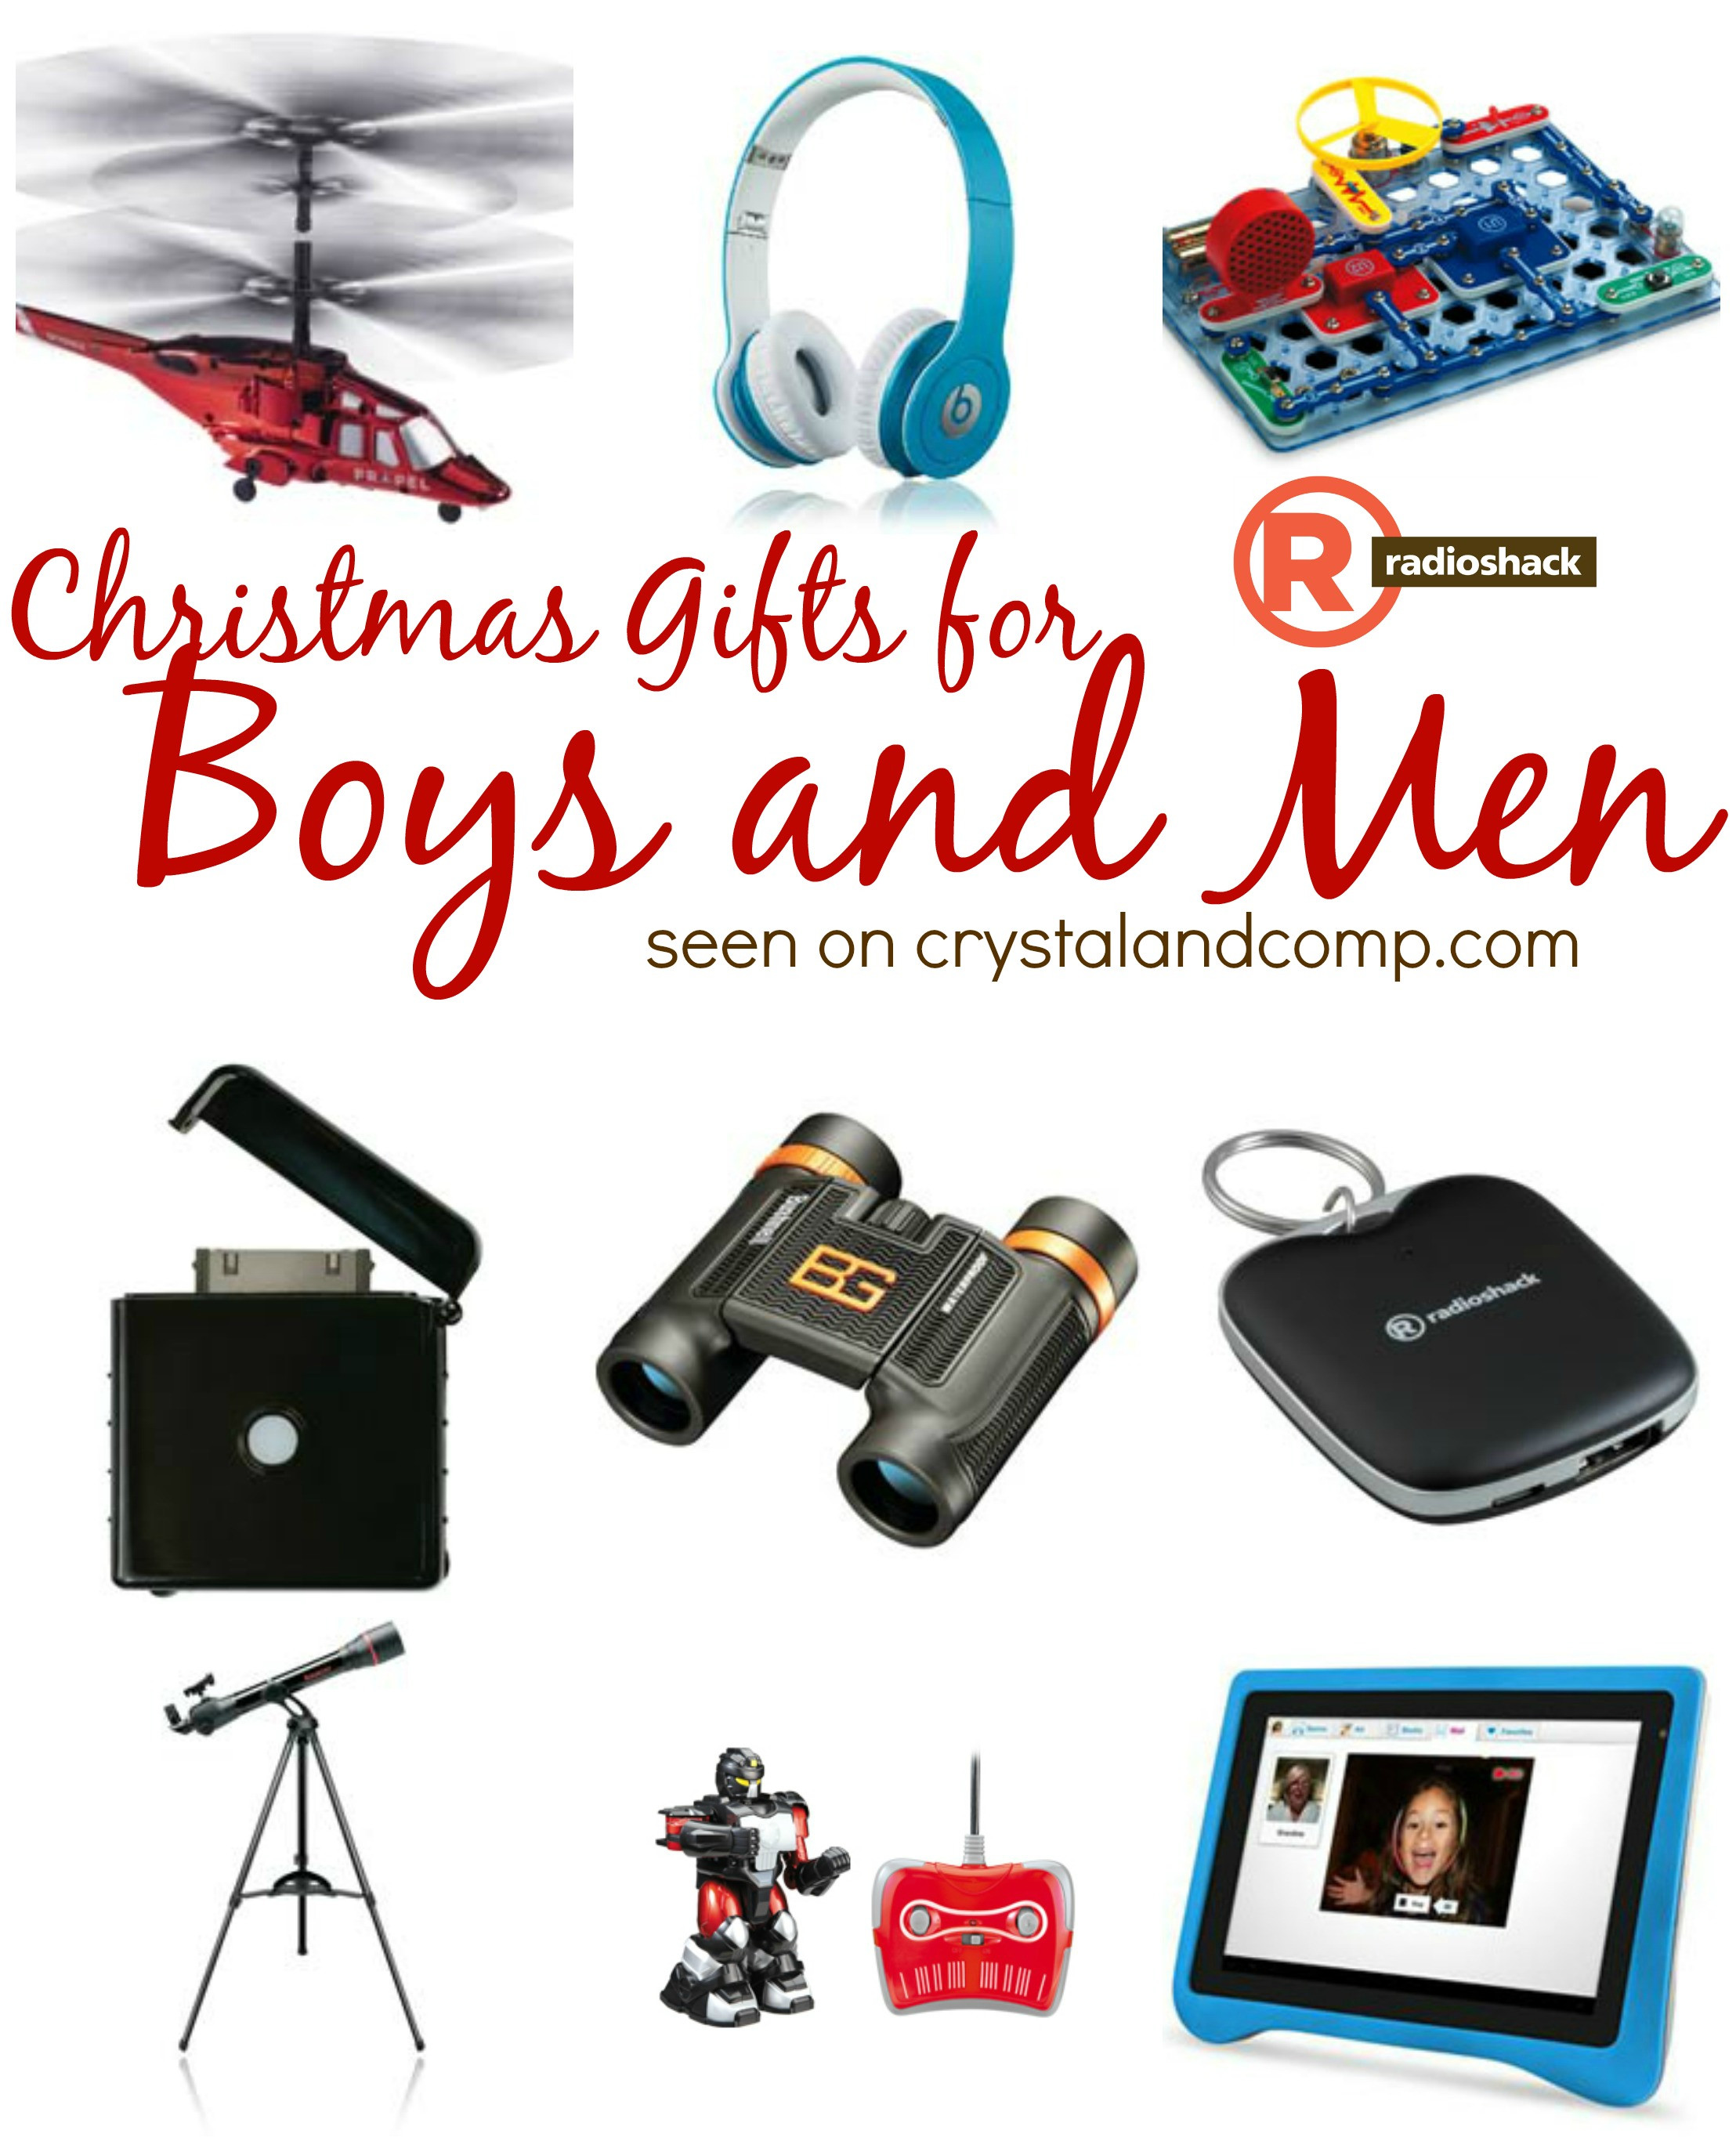 Best ideas about Xmas Gift Ideas For Boys . Save or Pin Christmas Gifts for Boys and Men RadioShack Now.